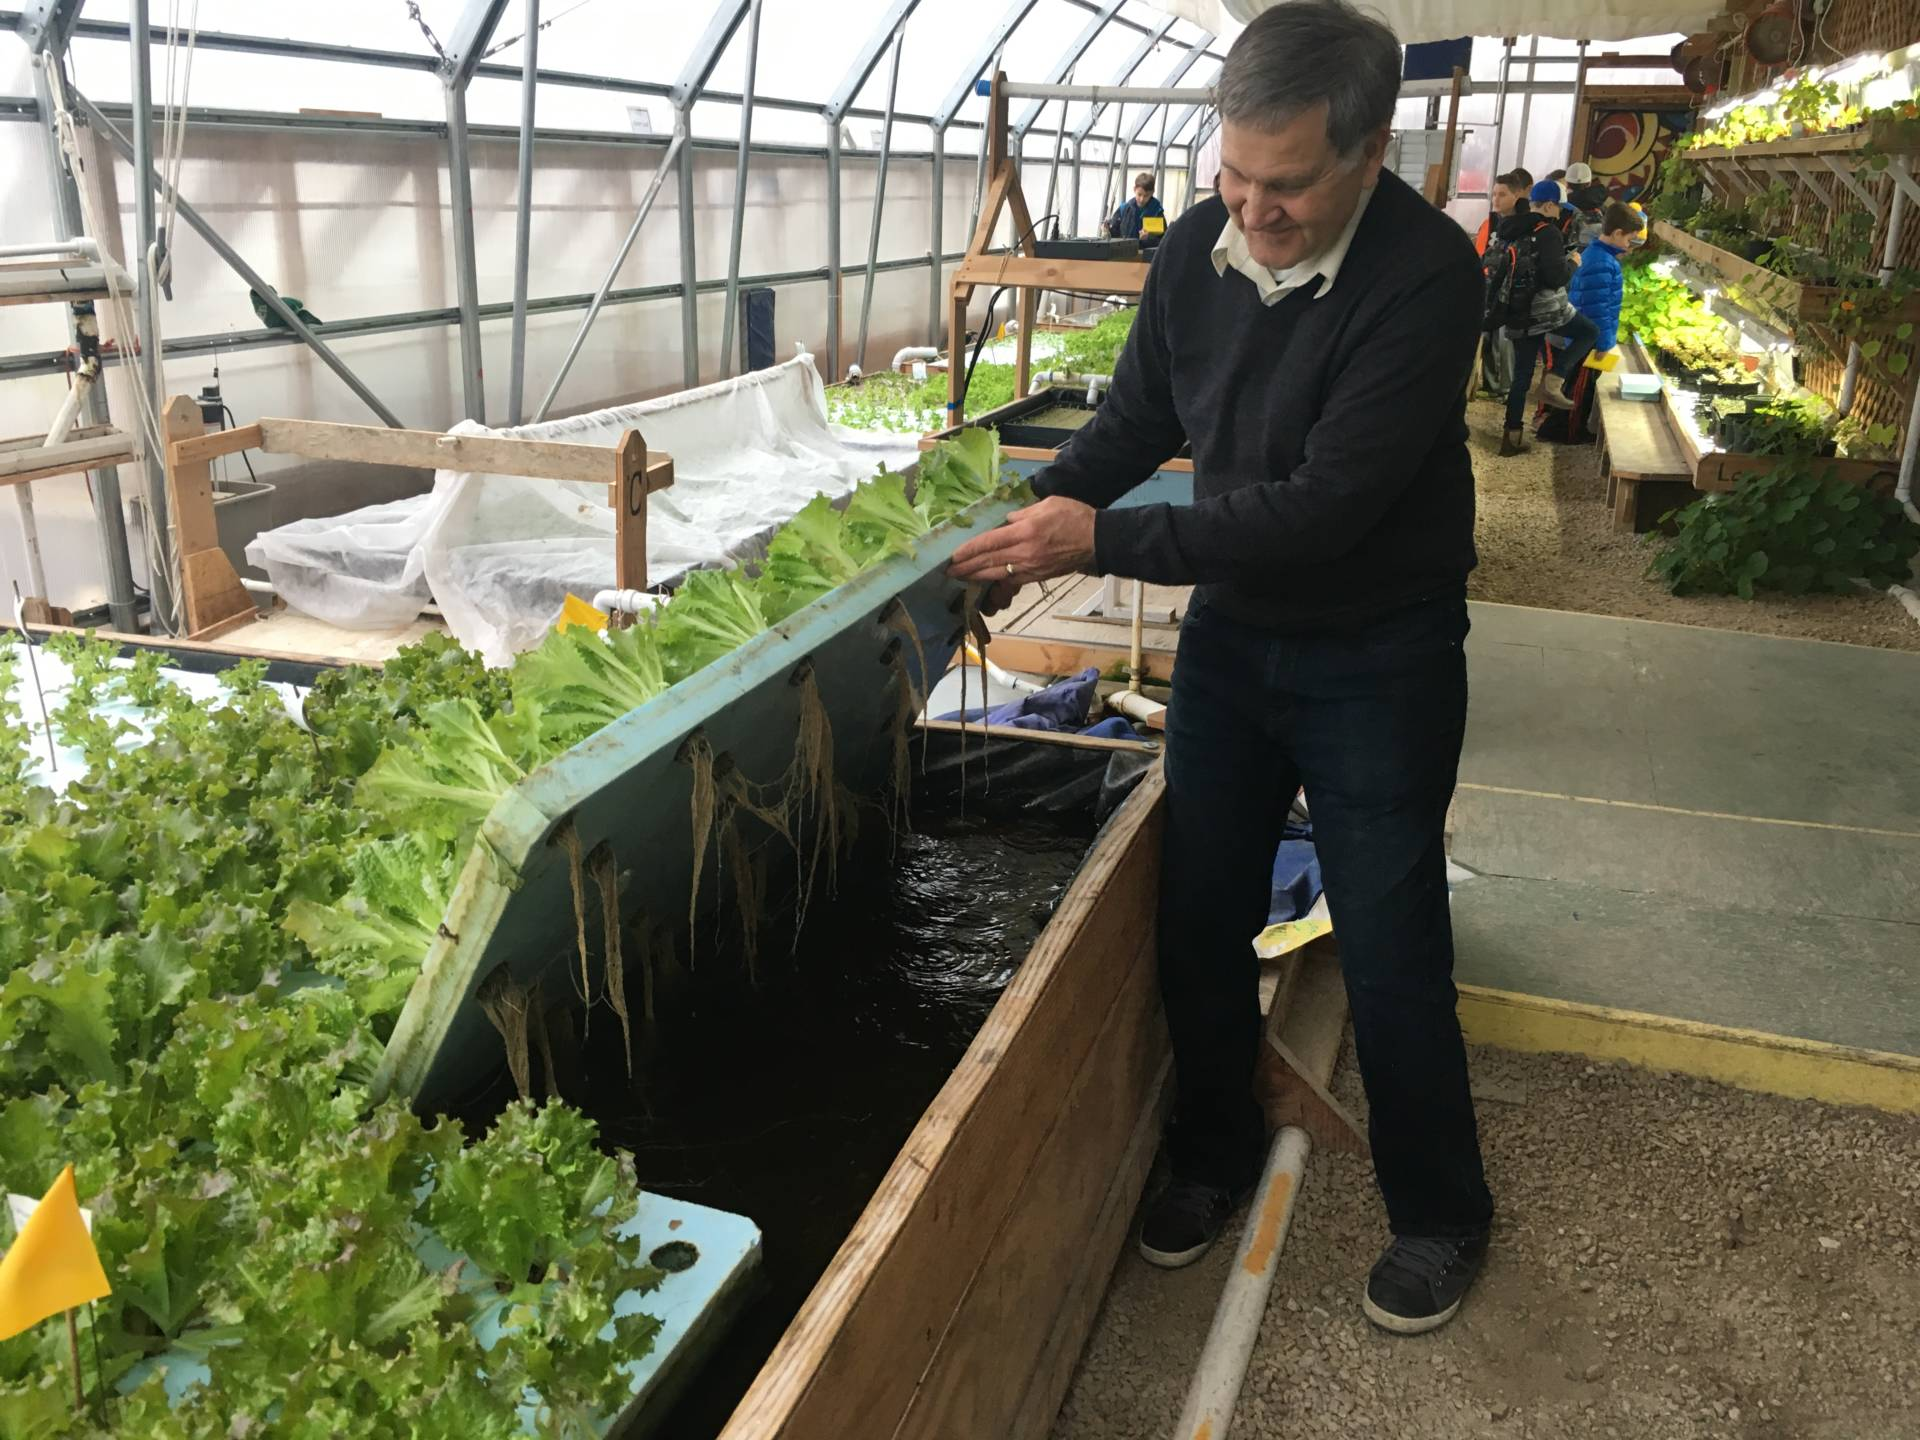 This is Pat Wilborn owner of PortFish, an aquaponics farm in Port Washington, WI. My 6th grade students were there last week for an urban farming/sustainability expedition. The water these plants grown in are a part of a closed loop system that also grows fish. Basically the plants, bacteria in the filters, and fish form a self cleaning system where the waste products of one, become the nutrients for the other. Pat can grow year round using this system using less energy, resources, and space even in the harsh winters in Wisconsin.